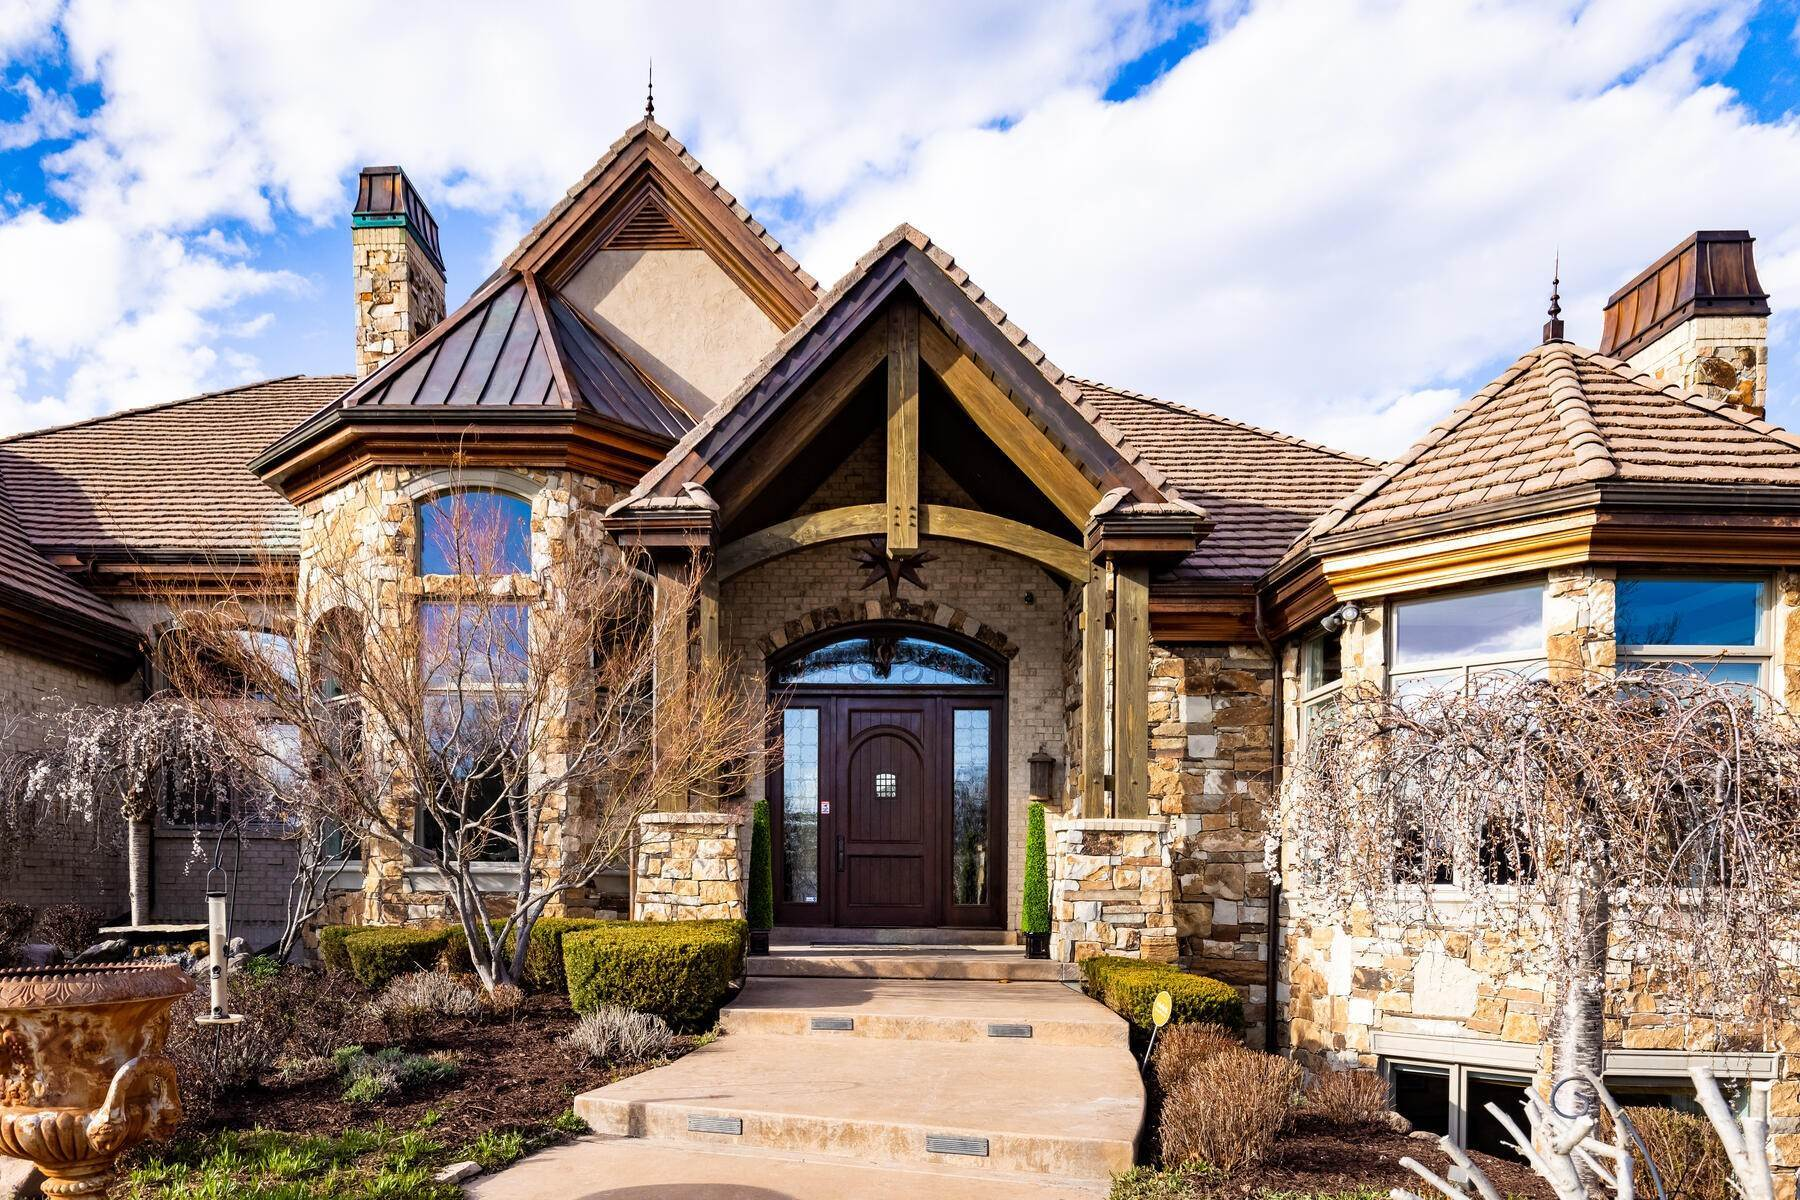 Single Family Homes for Sale at Beautiful Riverfront Estate 1937 E Siesta Dr Sandy, Utah 84093 United States